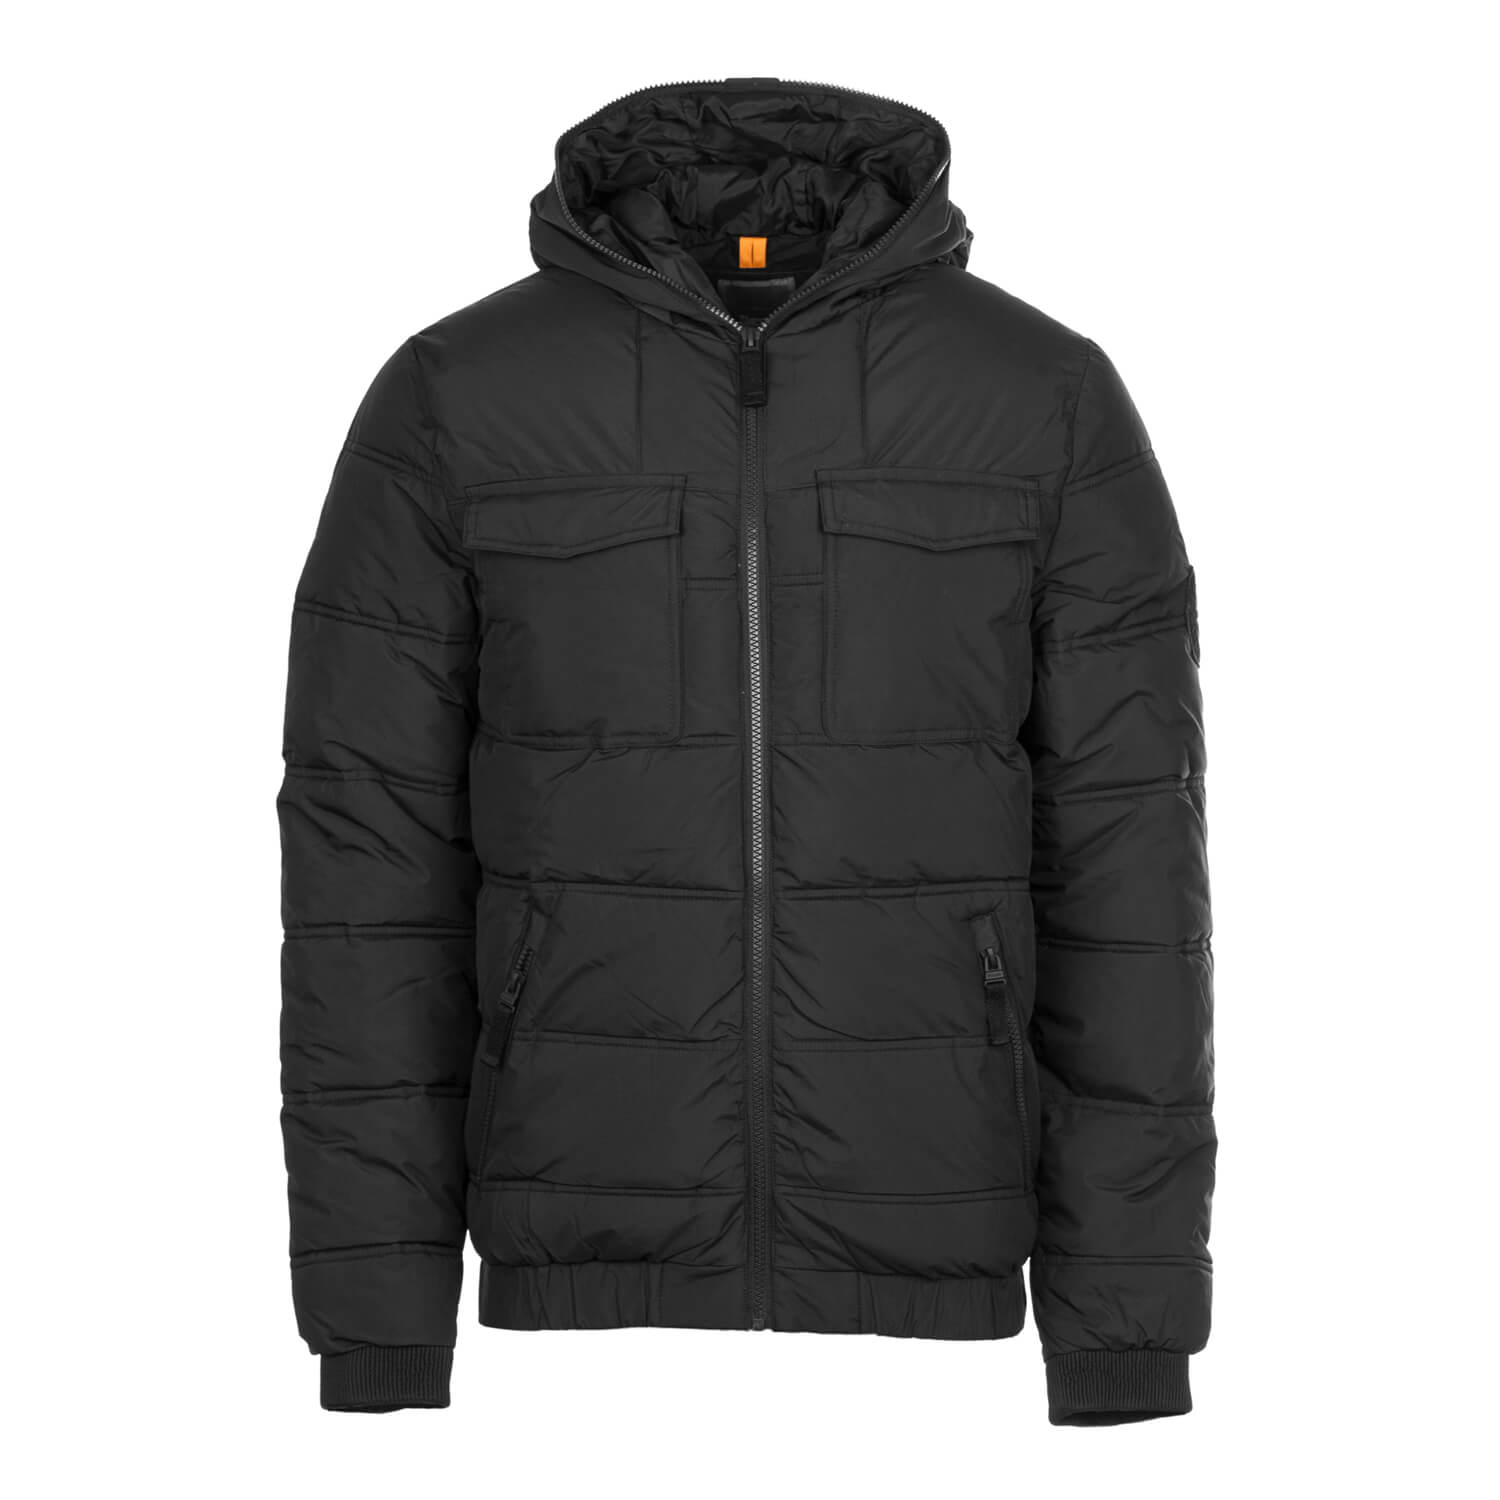 Bench winter jacke herren